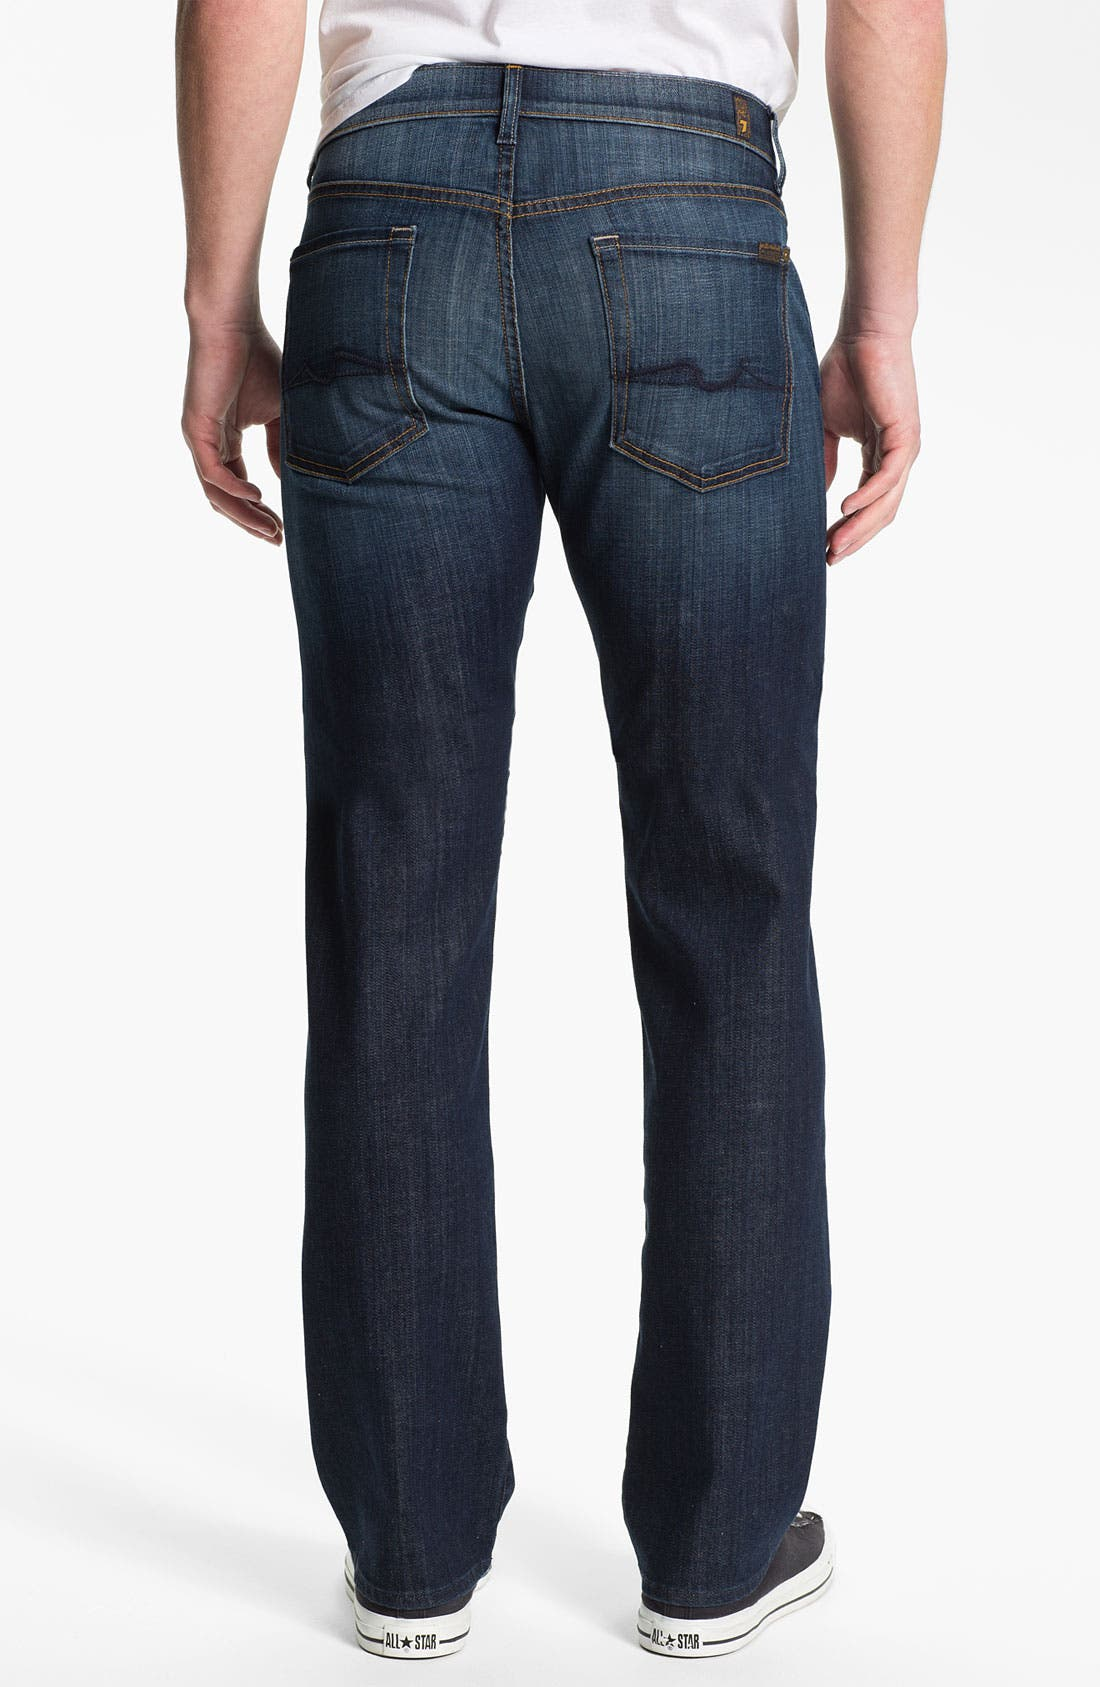 Main Image - 7 For All Mankind® 'Standard' Straight Leg Jeans (Worn L.A. Dark)